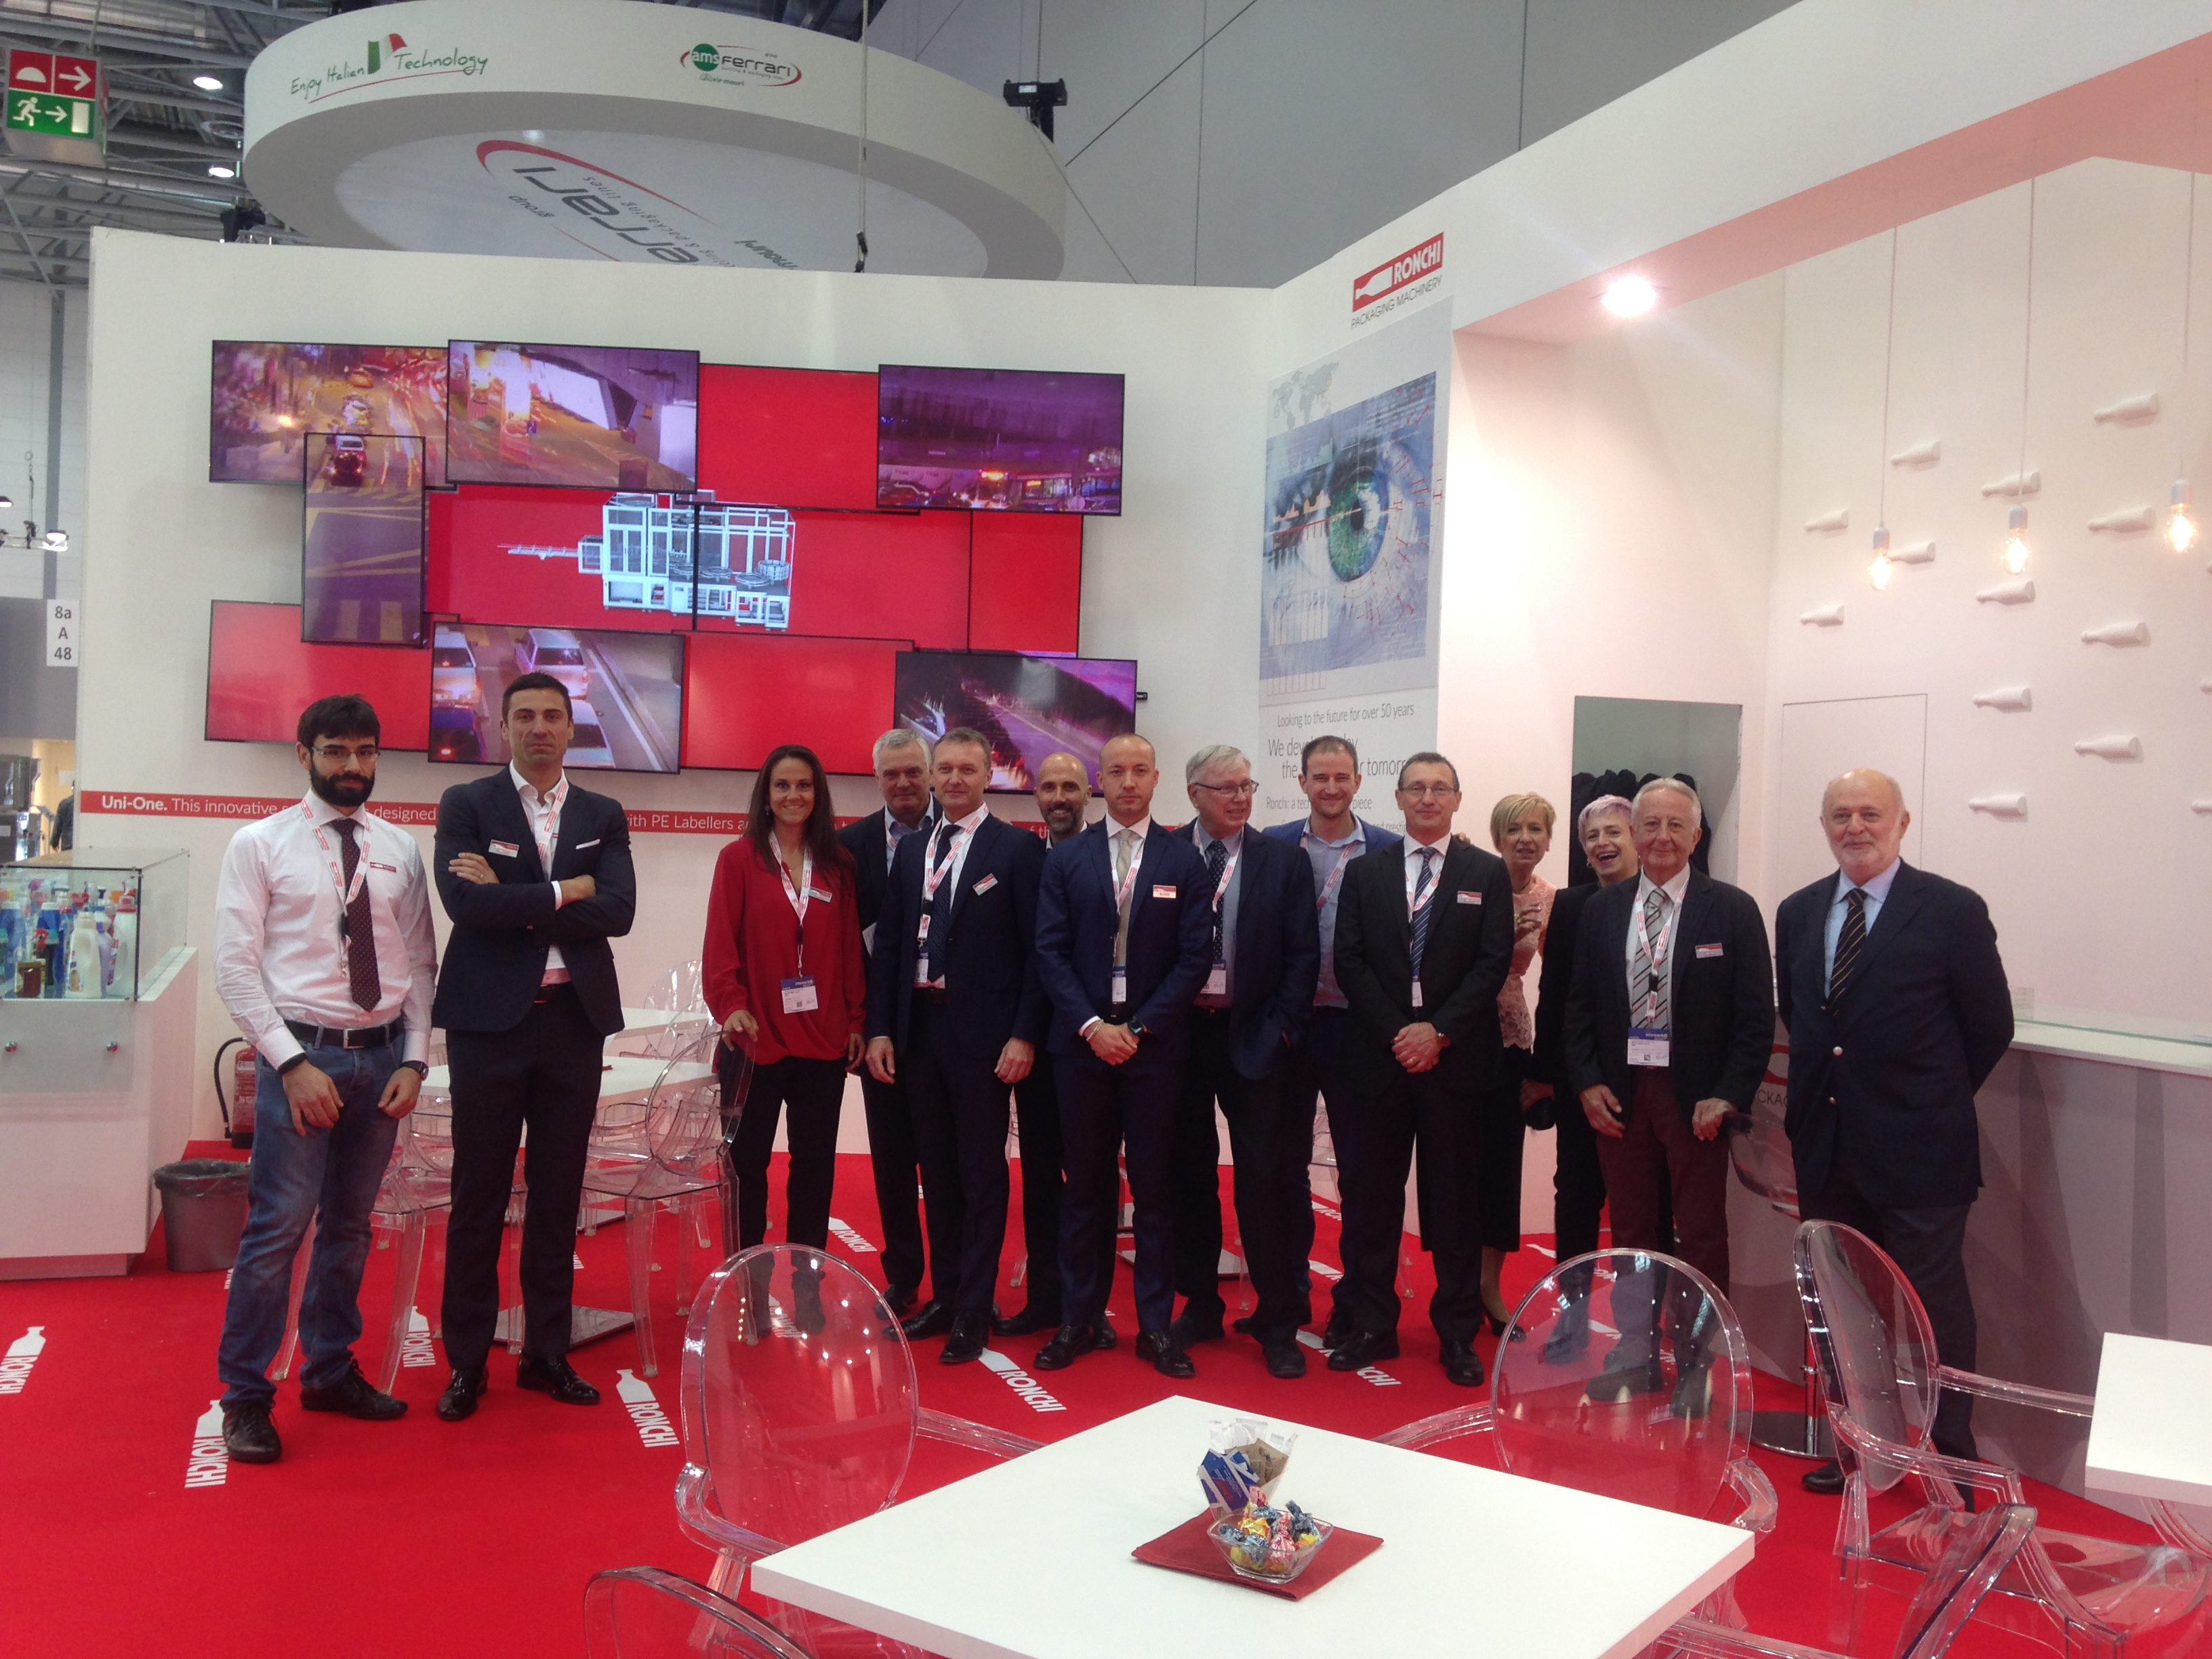 Ronchi family Interpack Dusseldorf